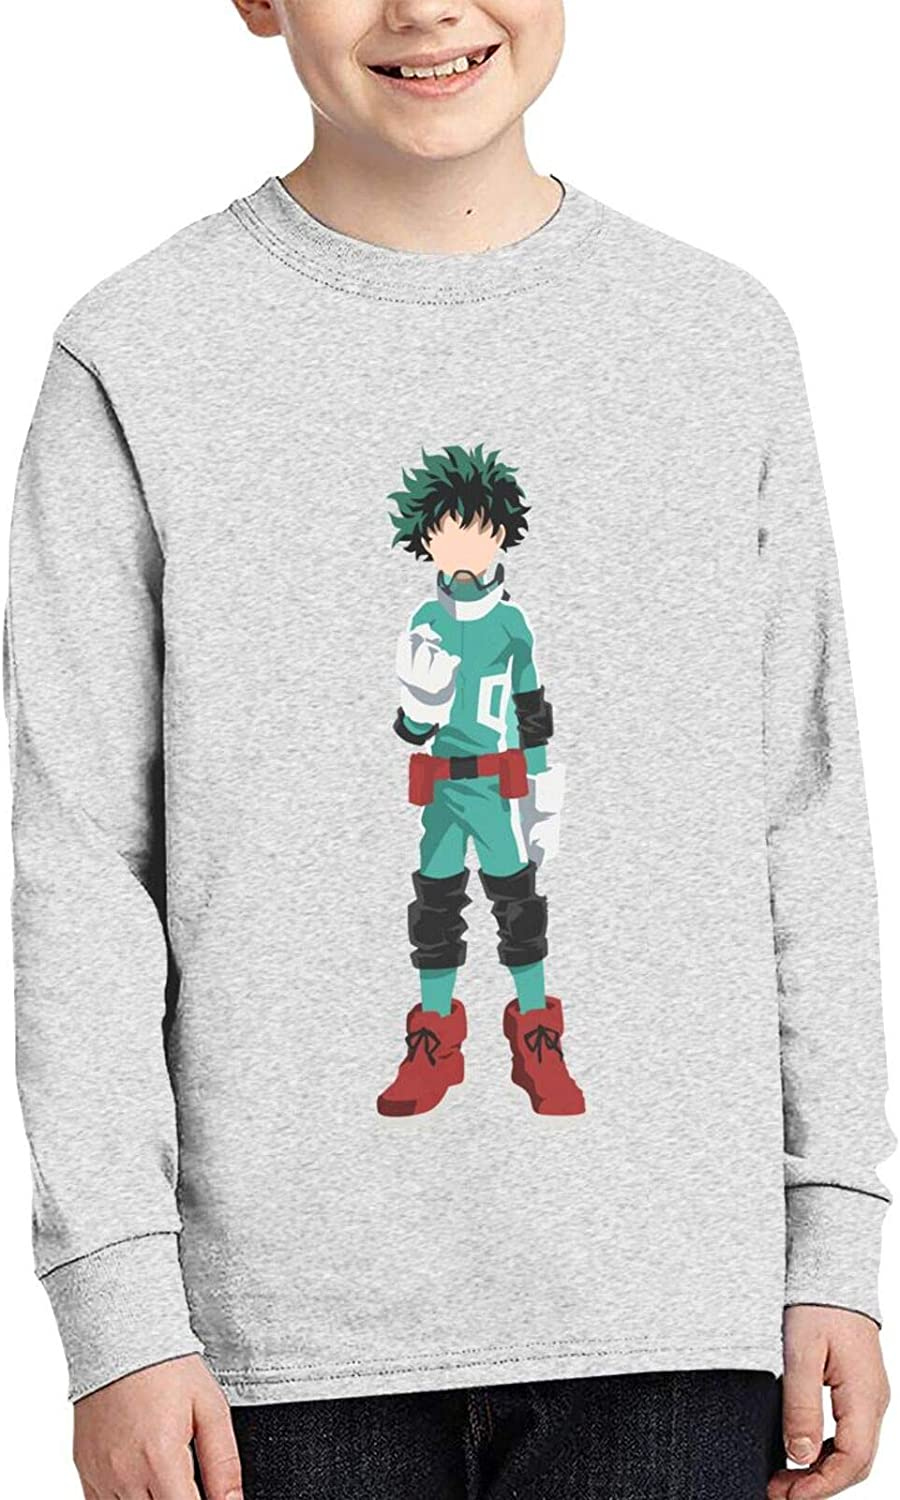 Teens Boys Cotton 3D Printing Funny Round Neck Long Sleeve T Shirt Anime Graphic Tee Shirts Top